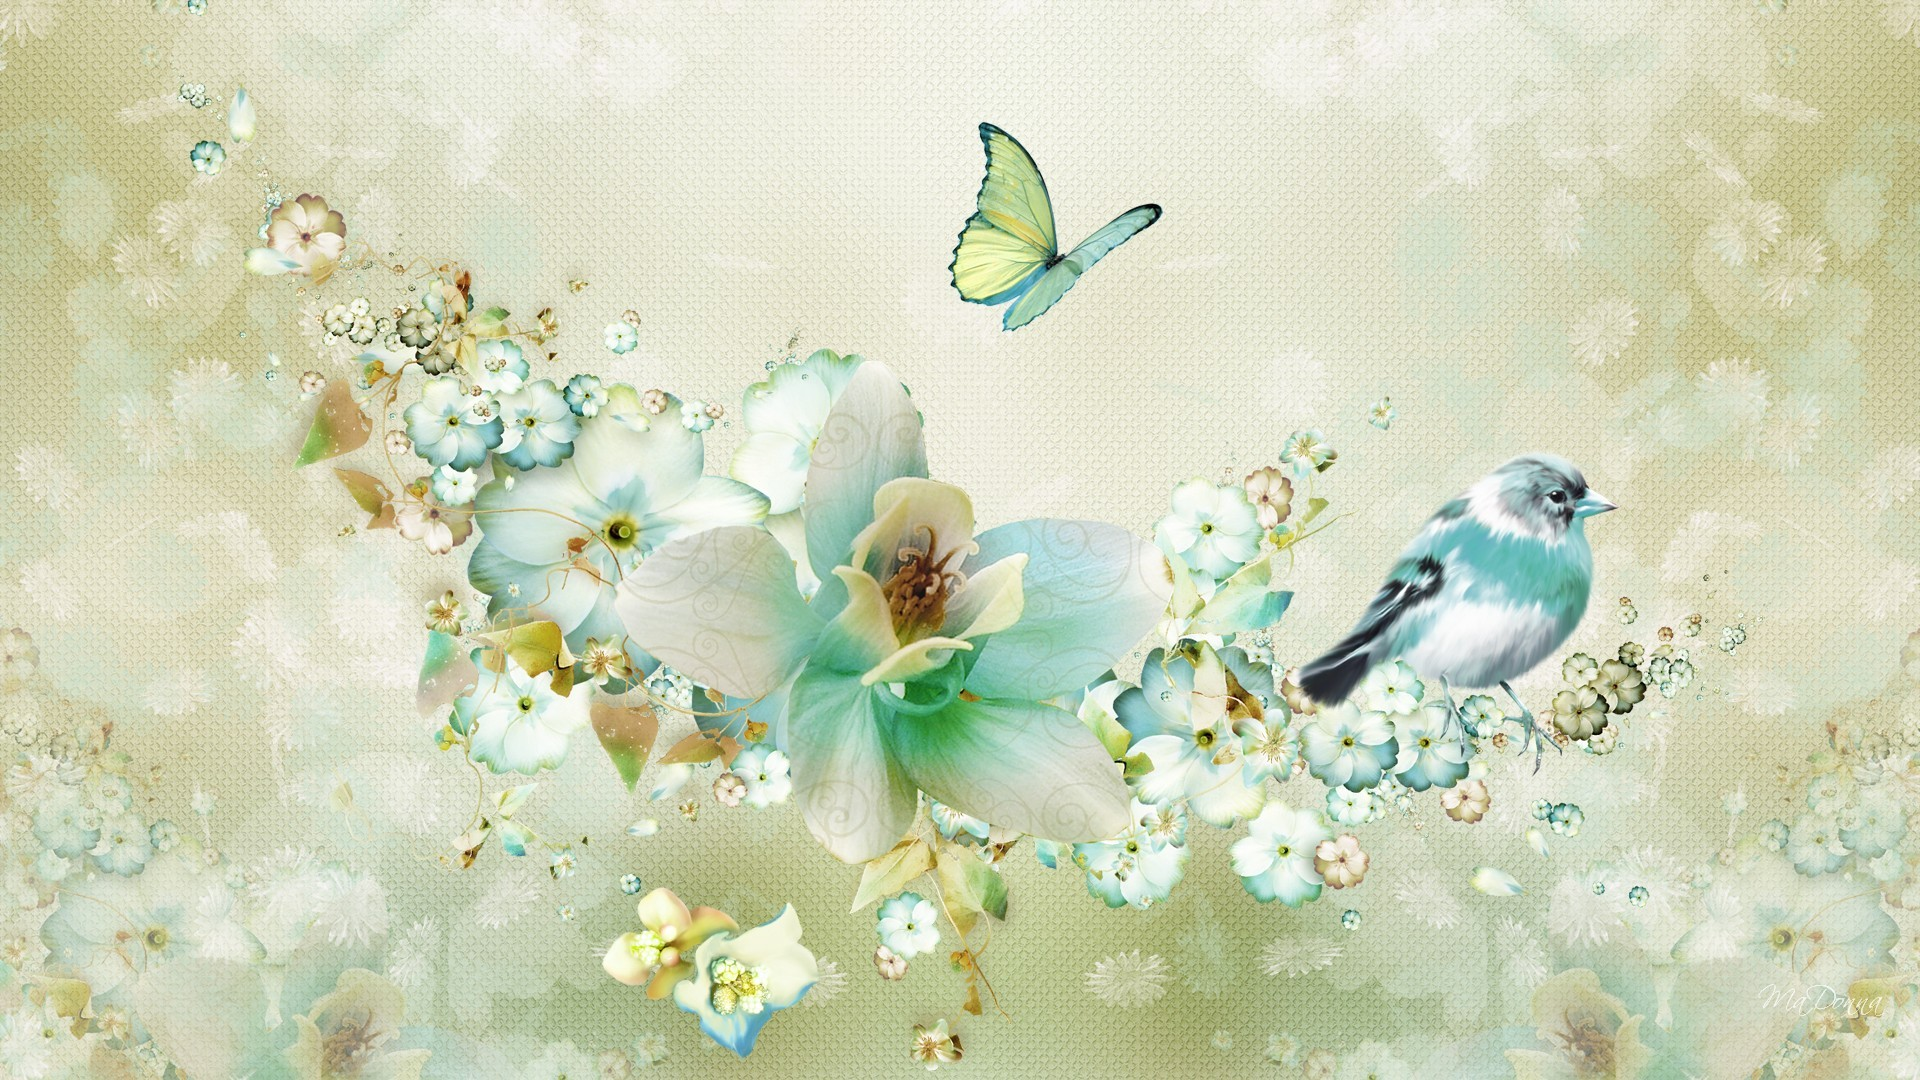 Vintage Springtime Collage Hd Wallpaper Background Image